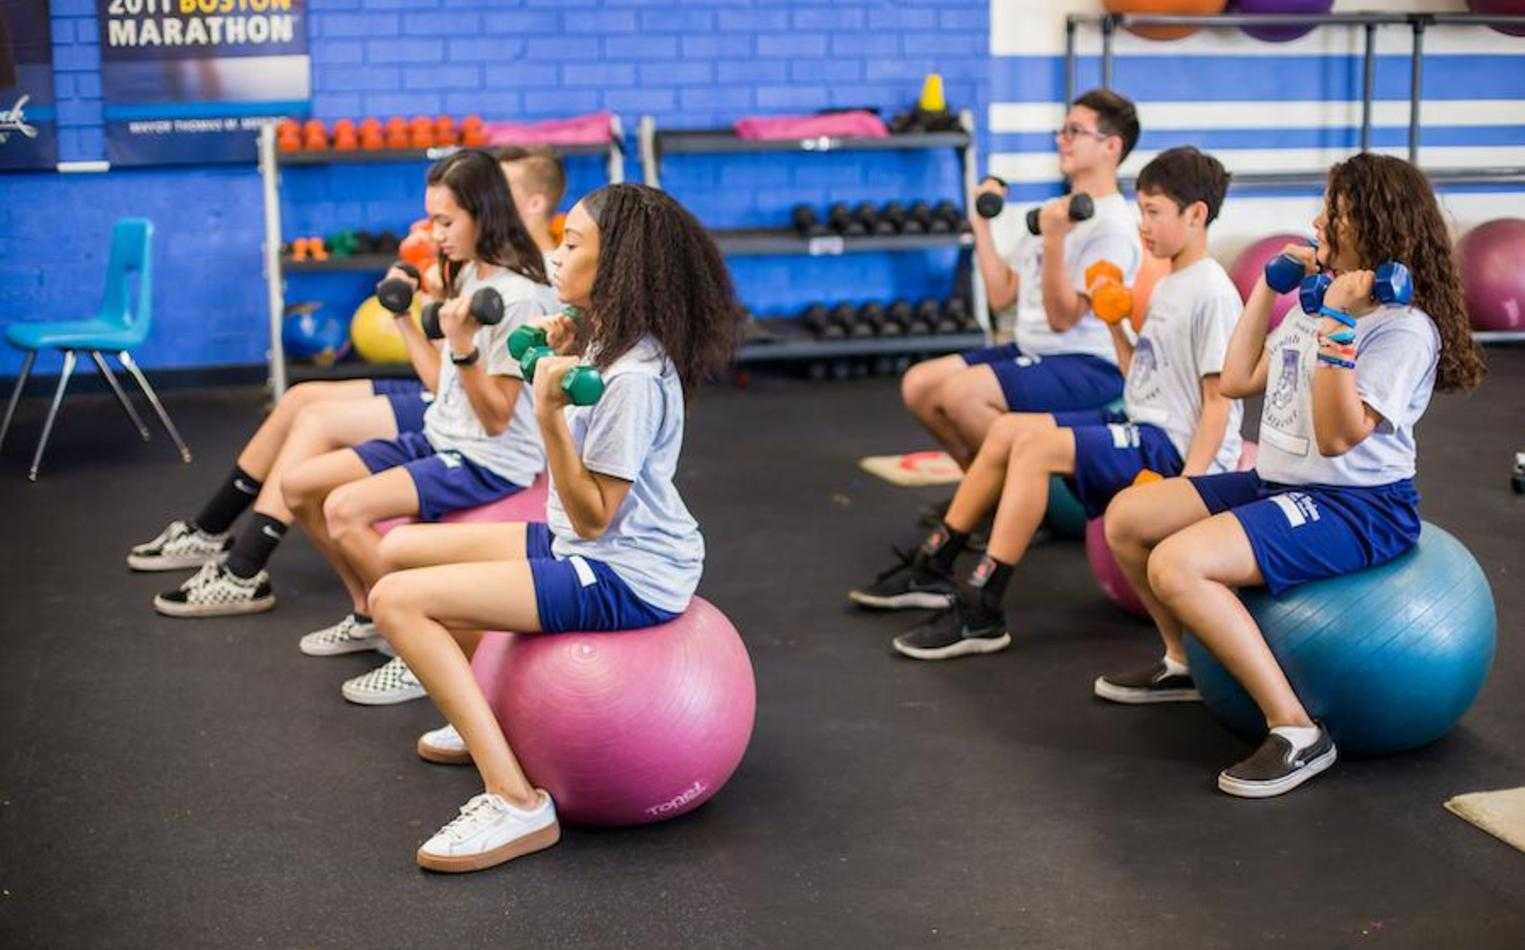 Middle school students working out in gym class.